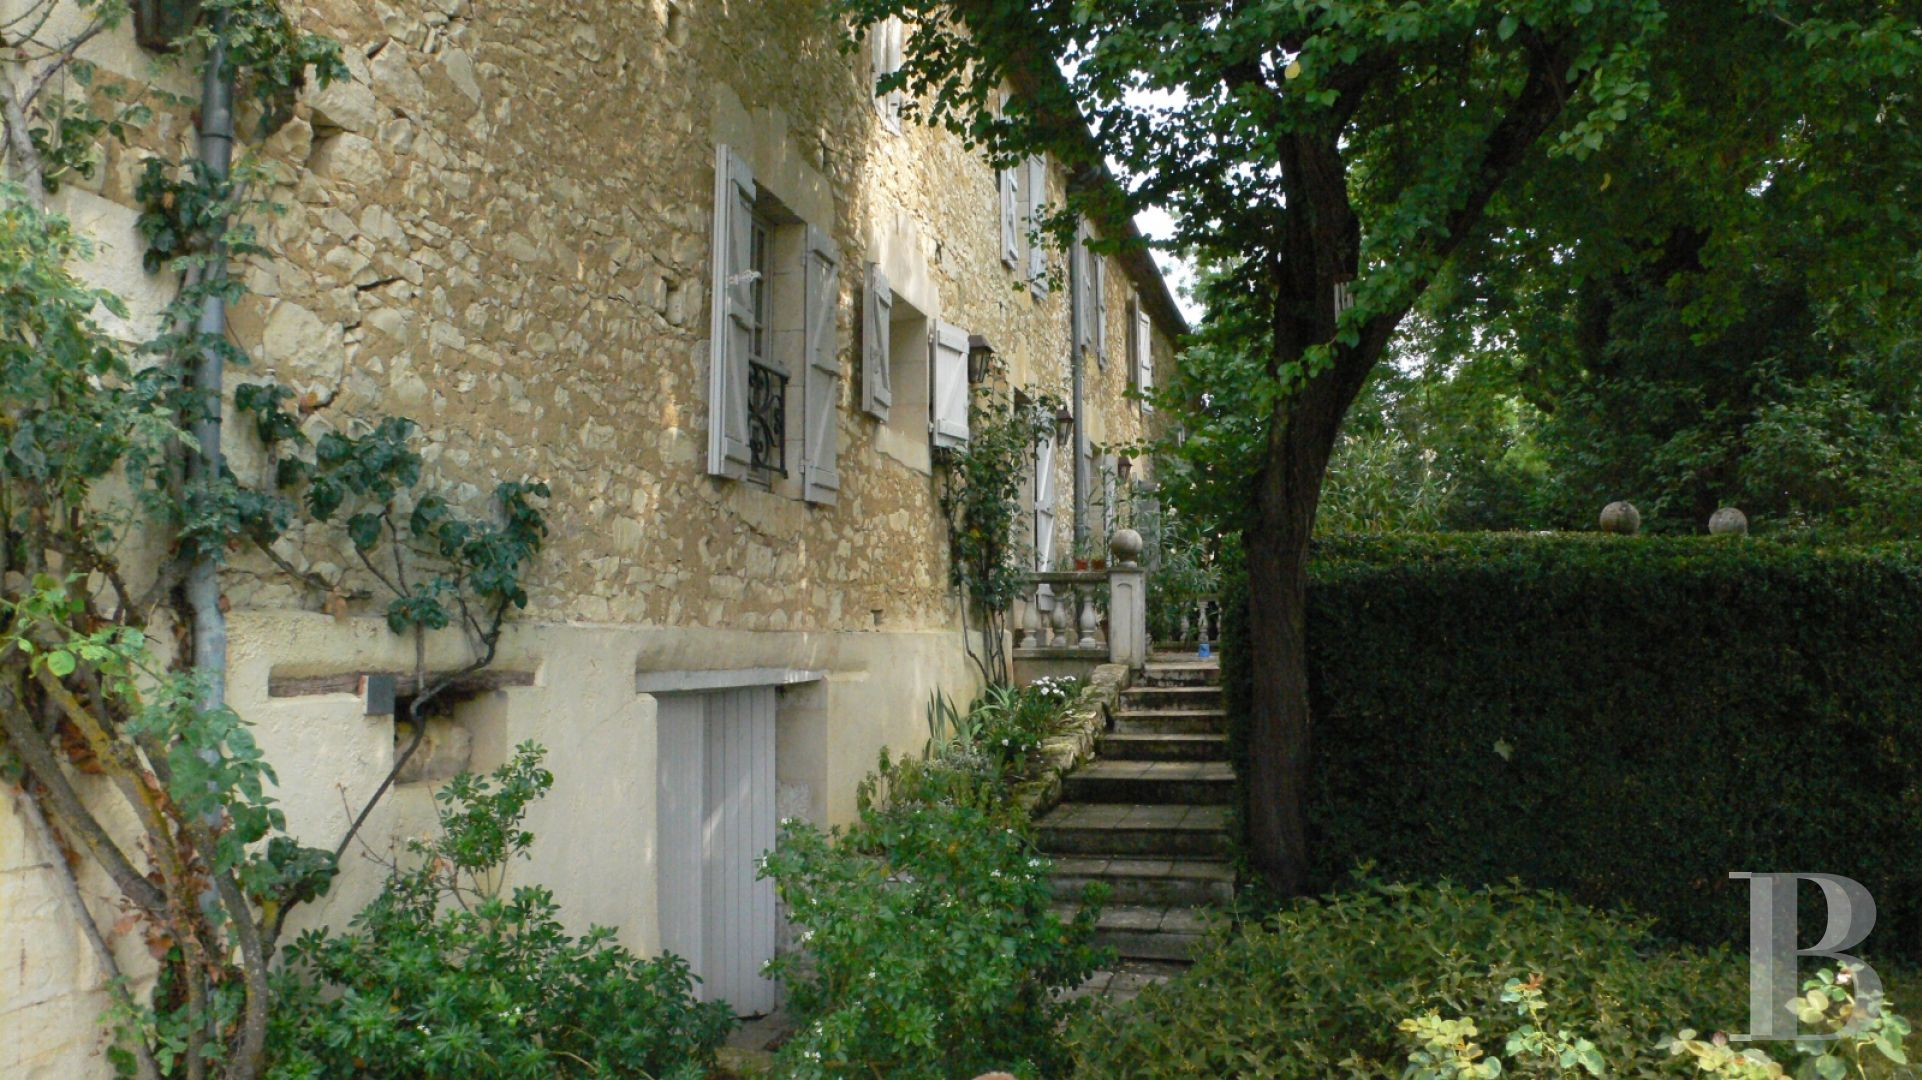 property for sale France midi pyrenees residences farms - 4 zoom